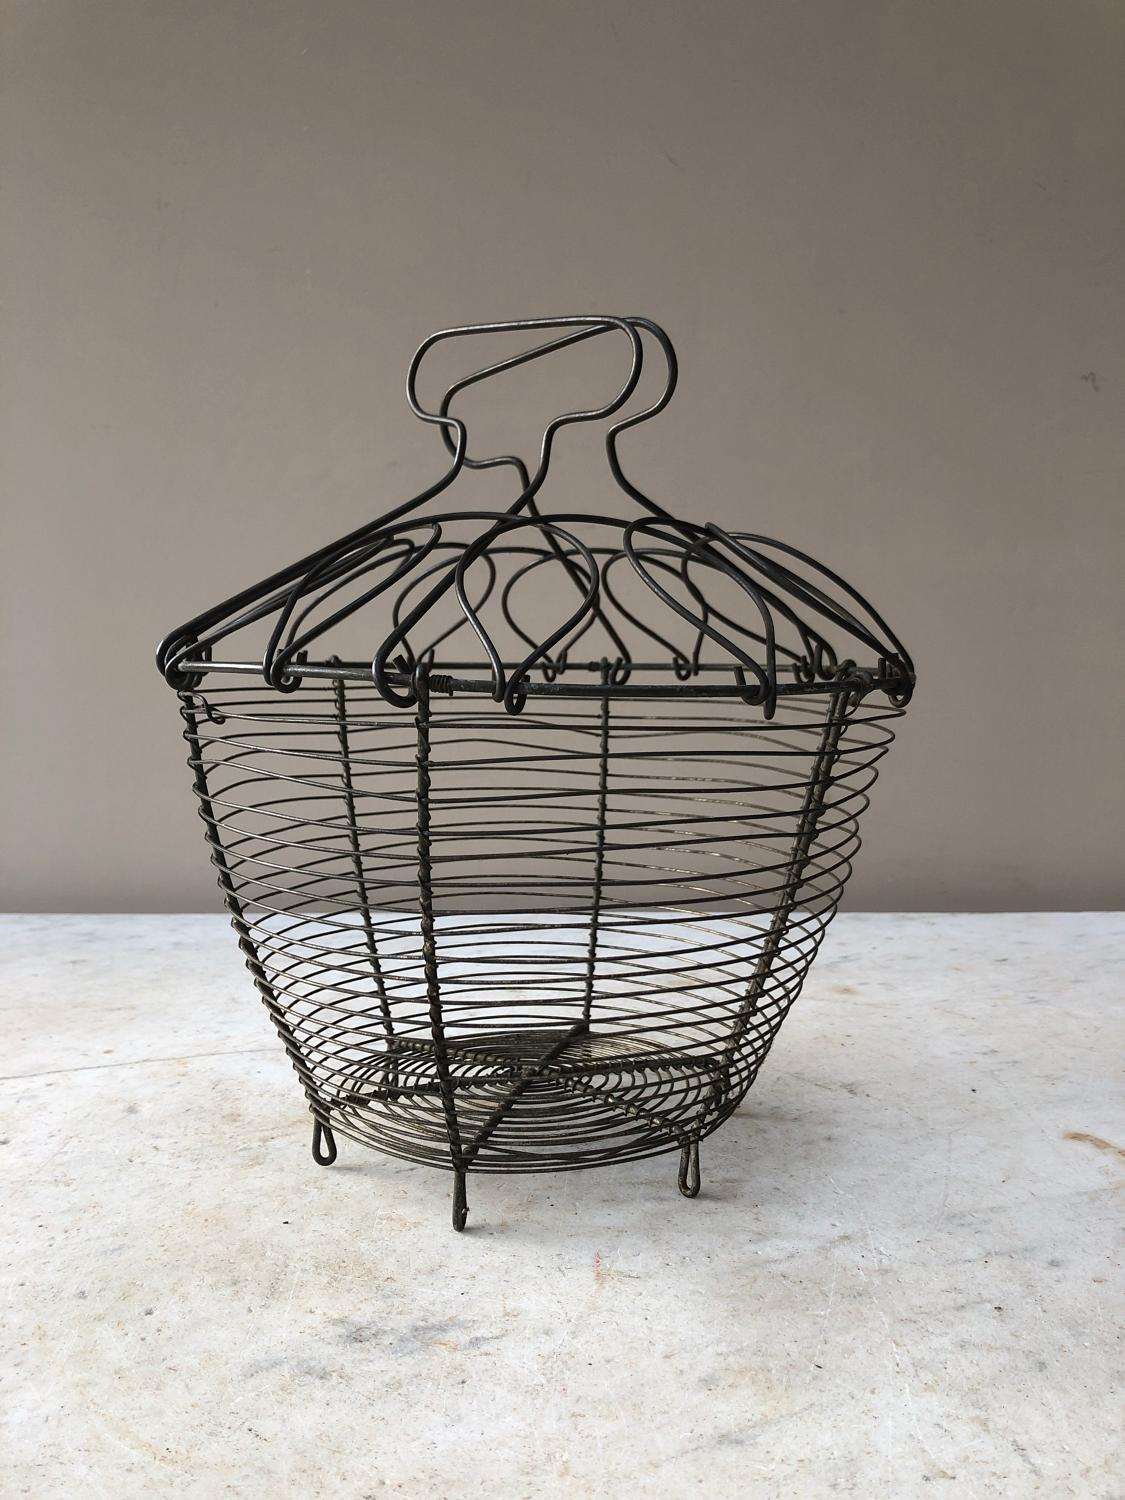 Early 20th Century Exc Condition Wire Work Salad Shaker - Egg Basket